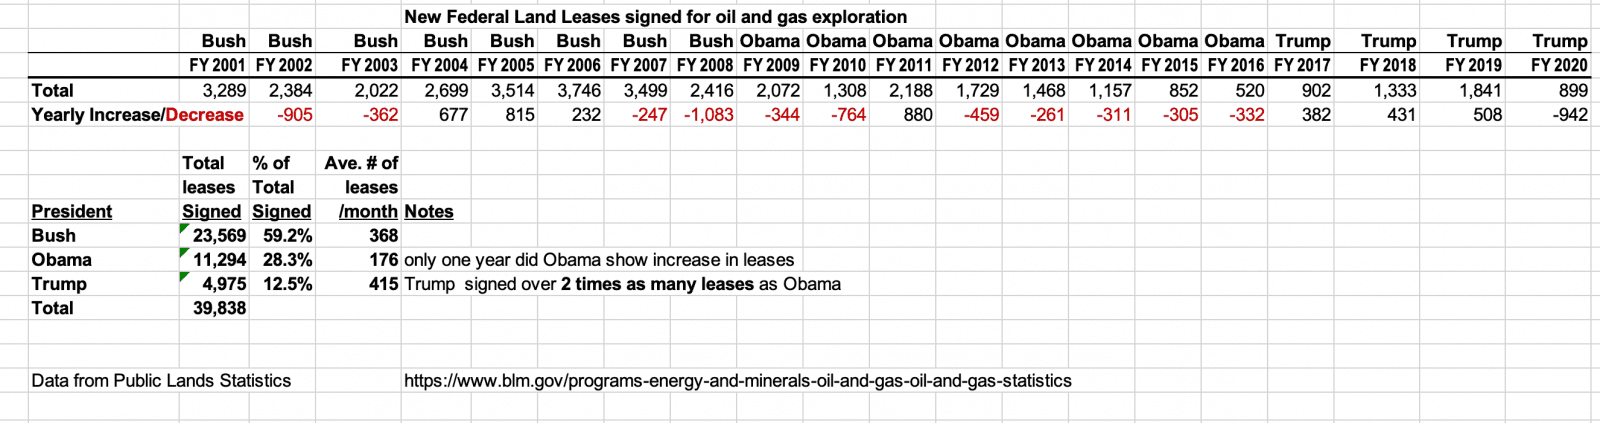 Fed_Oil_leases_signed_033021.png